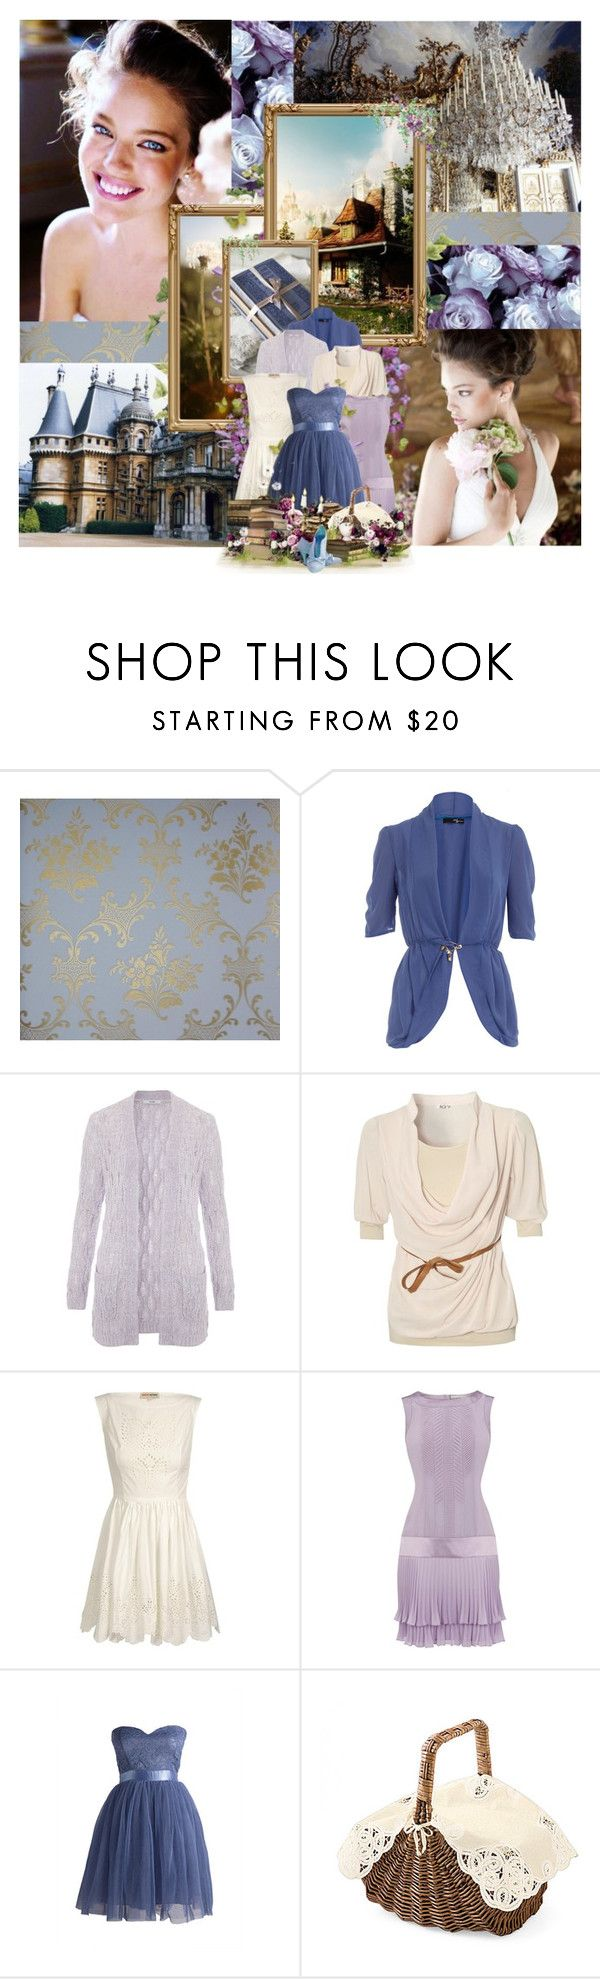 """""""Her head's up on some cloud..."""" by elsabear ❤ liked on Polyvore featuring L.A.M.B., Dorothy Perkins, WalG, Opening Ceremony, Karen Millen, disney dreamcast, belle, beast, castle and lumiere"""